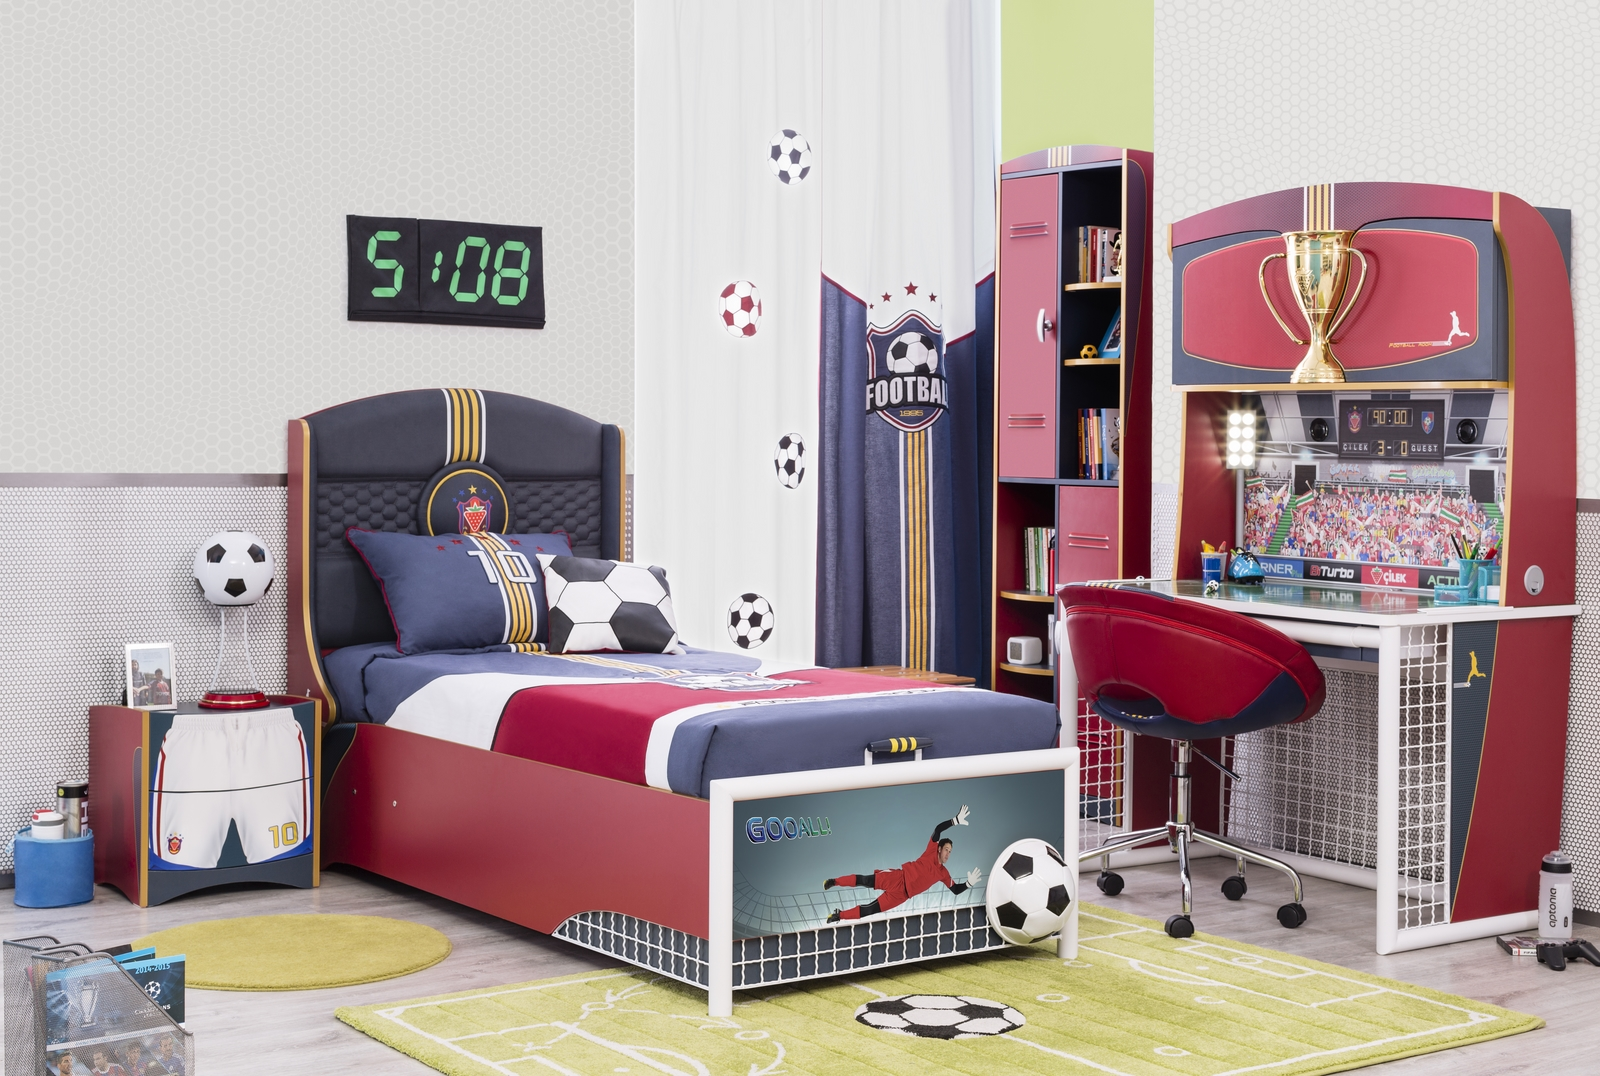 Champion_boxspring_opberg_bed_jongenskamer_kinderbed_1